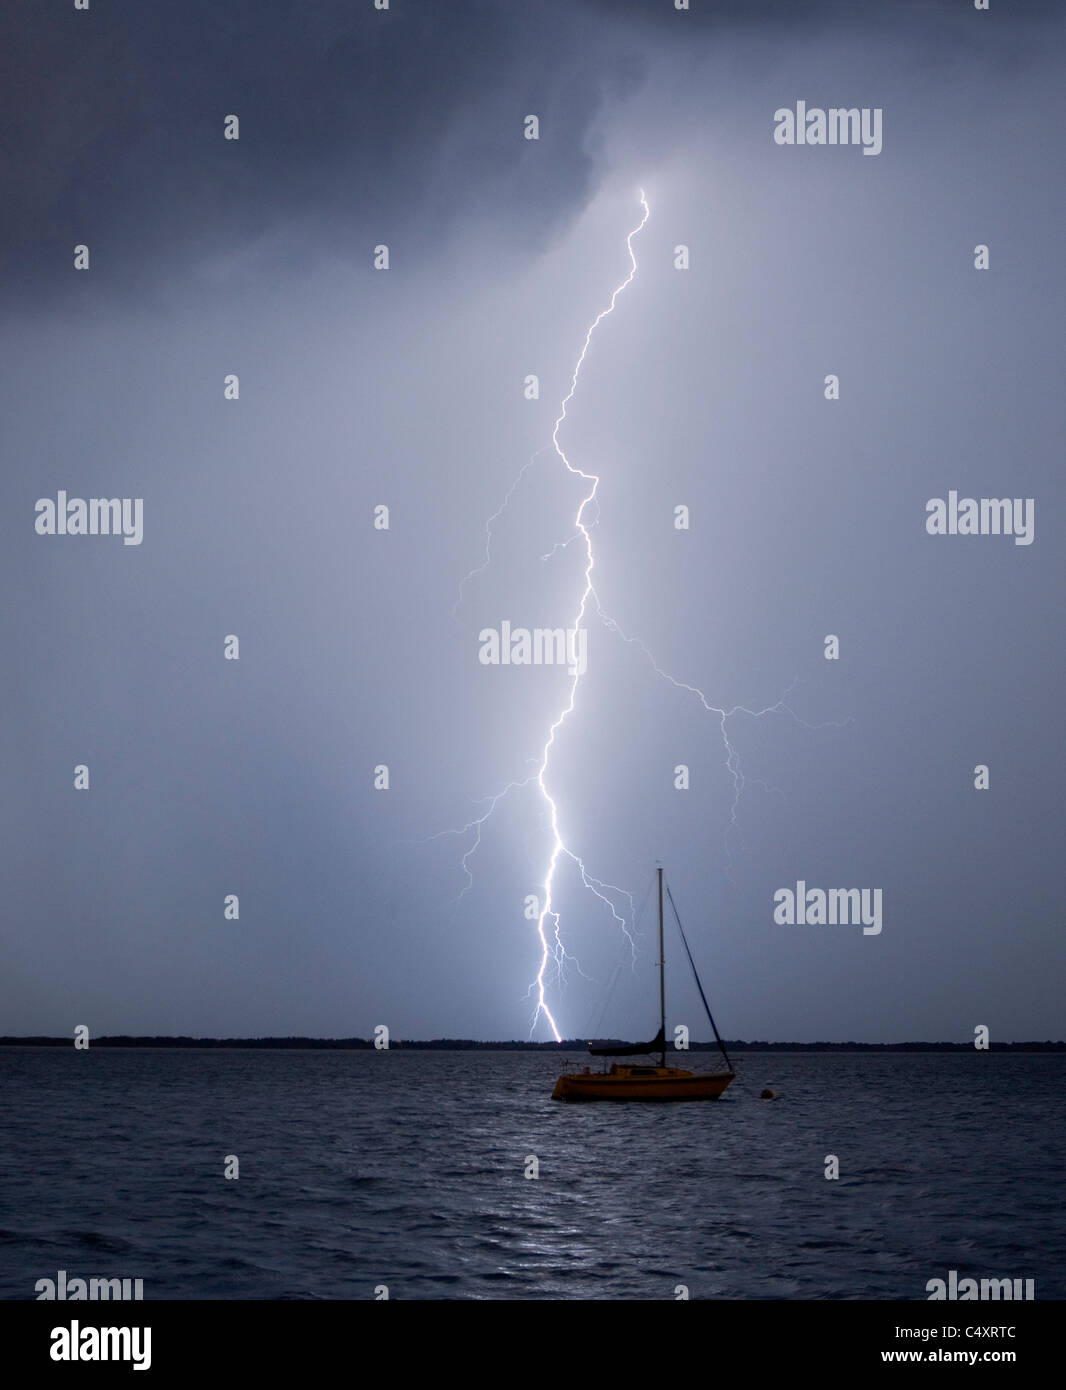 A lightning strike near a moored sailboat. - Stock Image